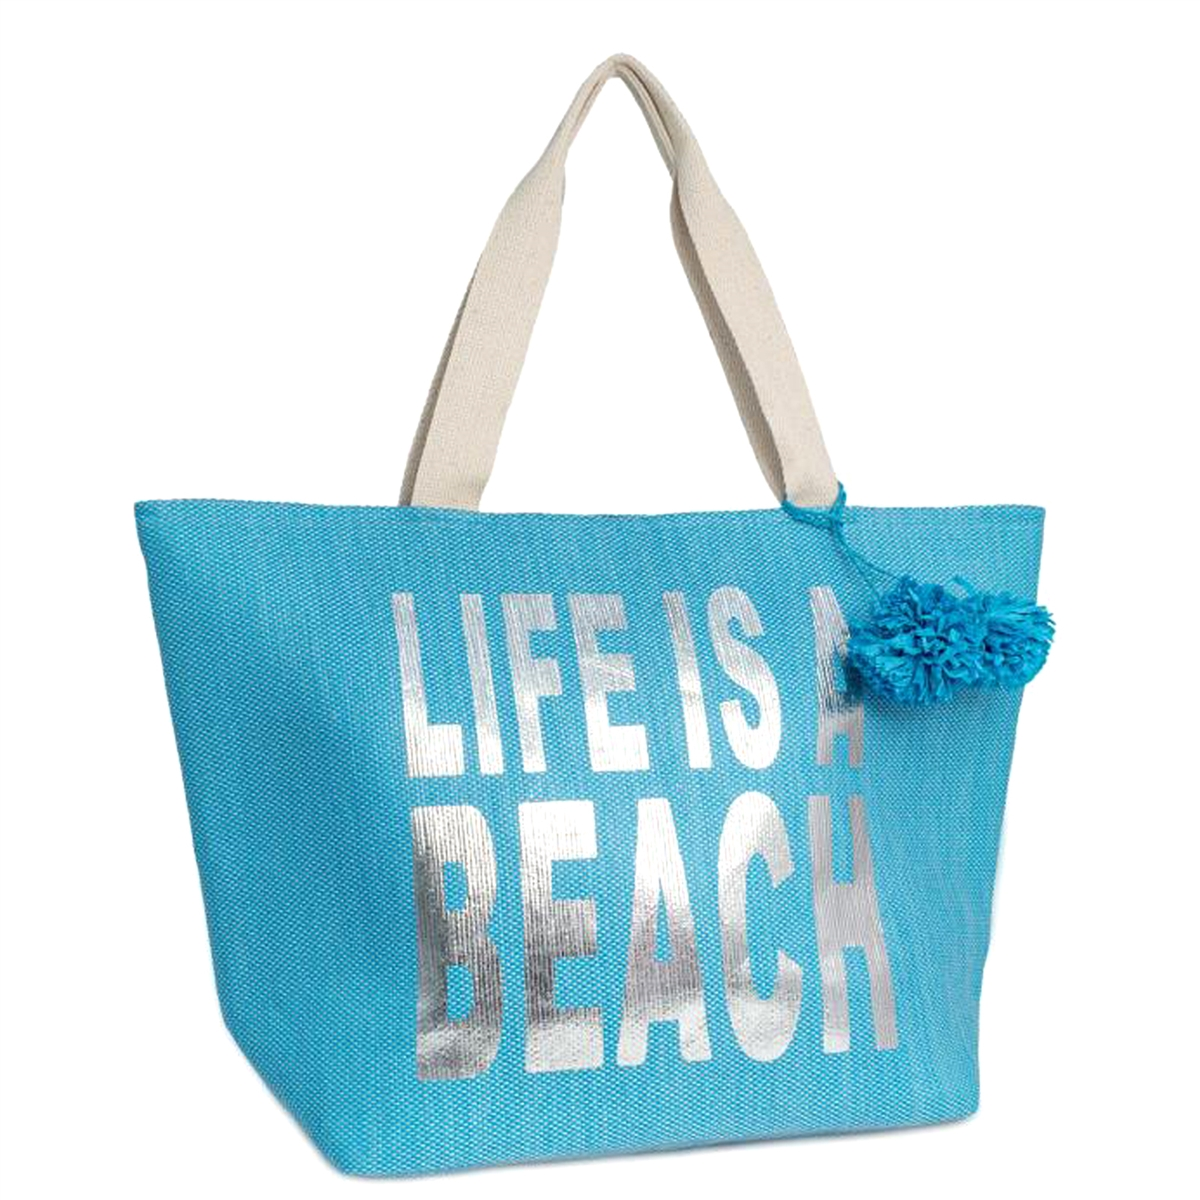 Life Is A Beach Insulated Oversized Cooler Tote Bag Turquoise